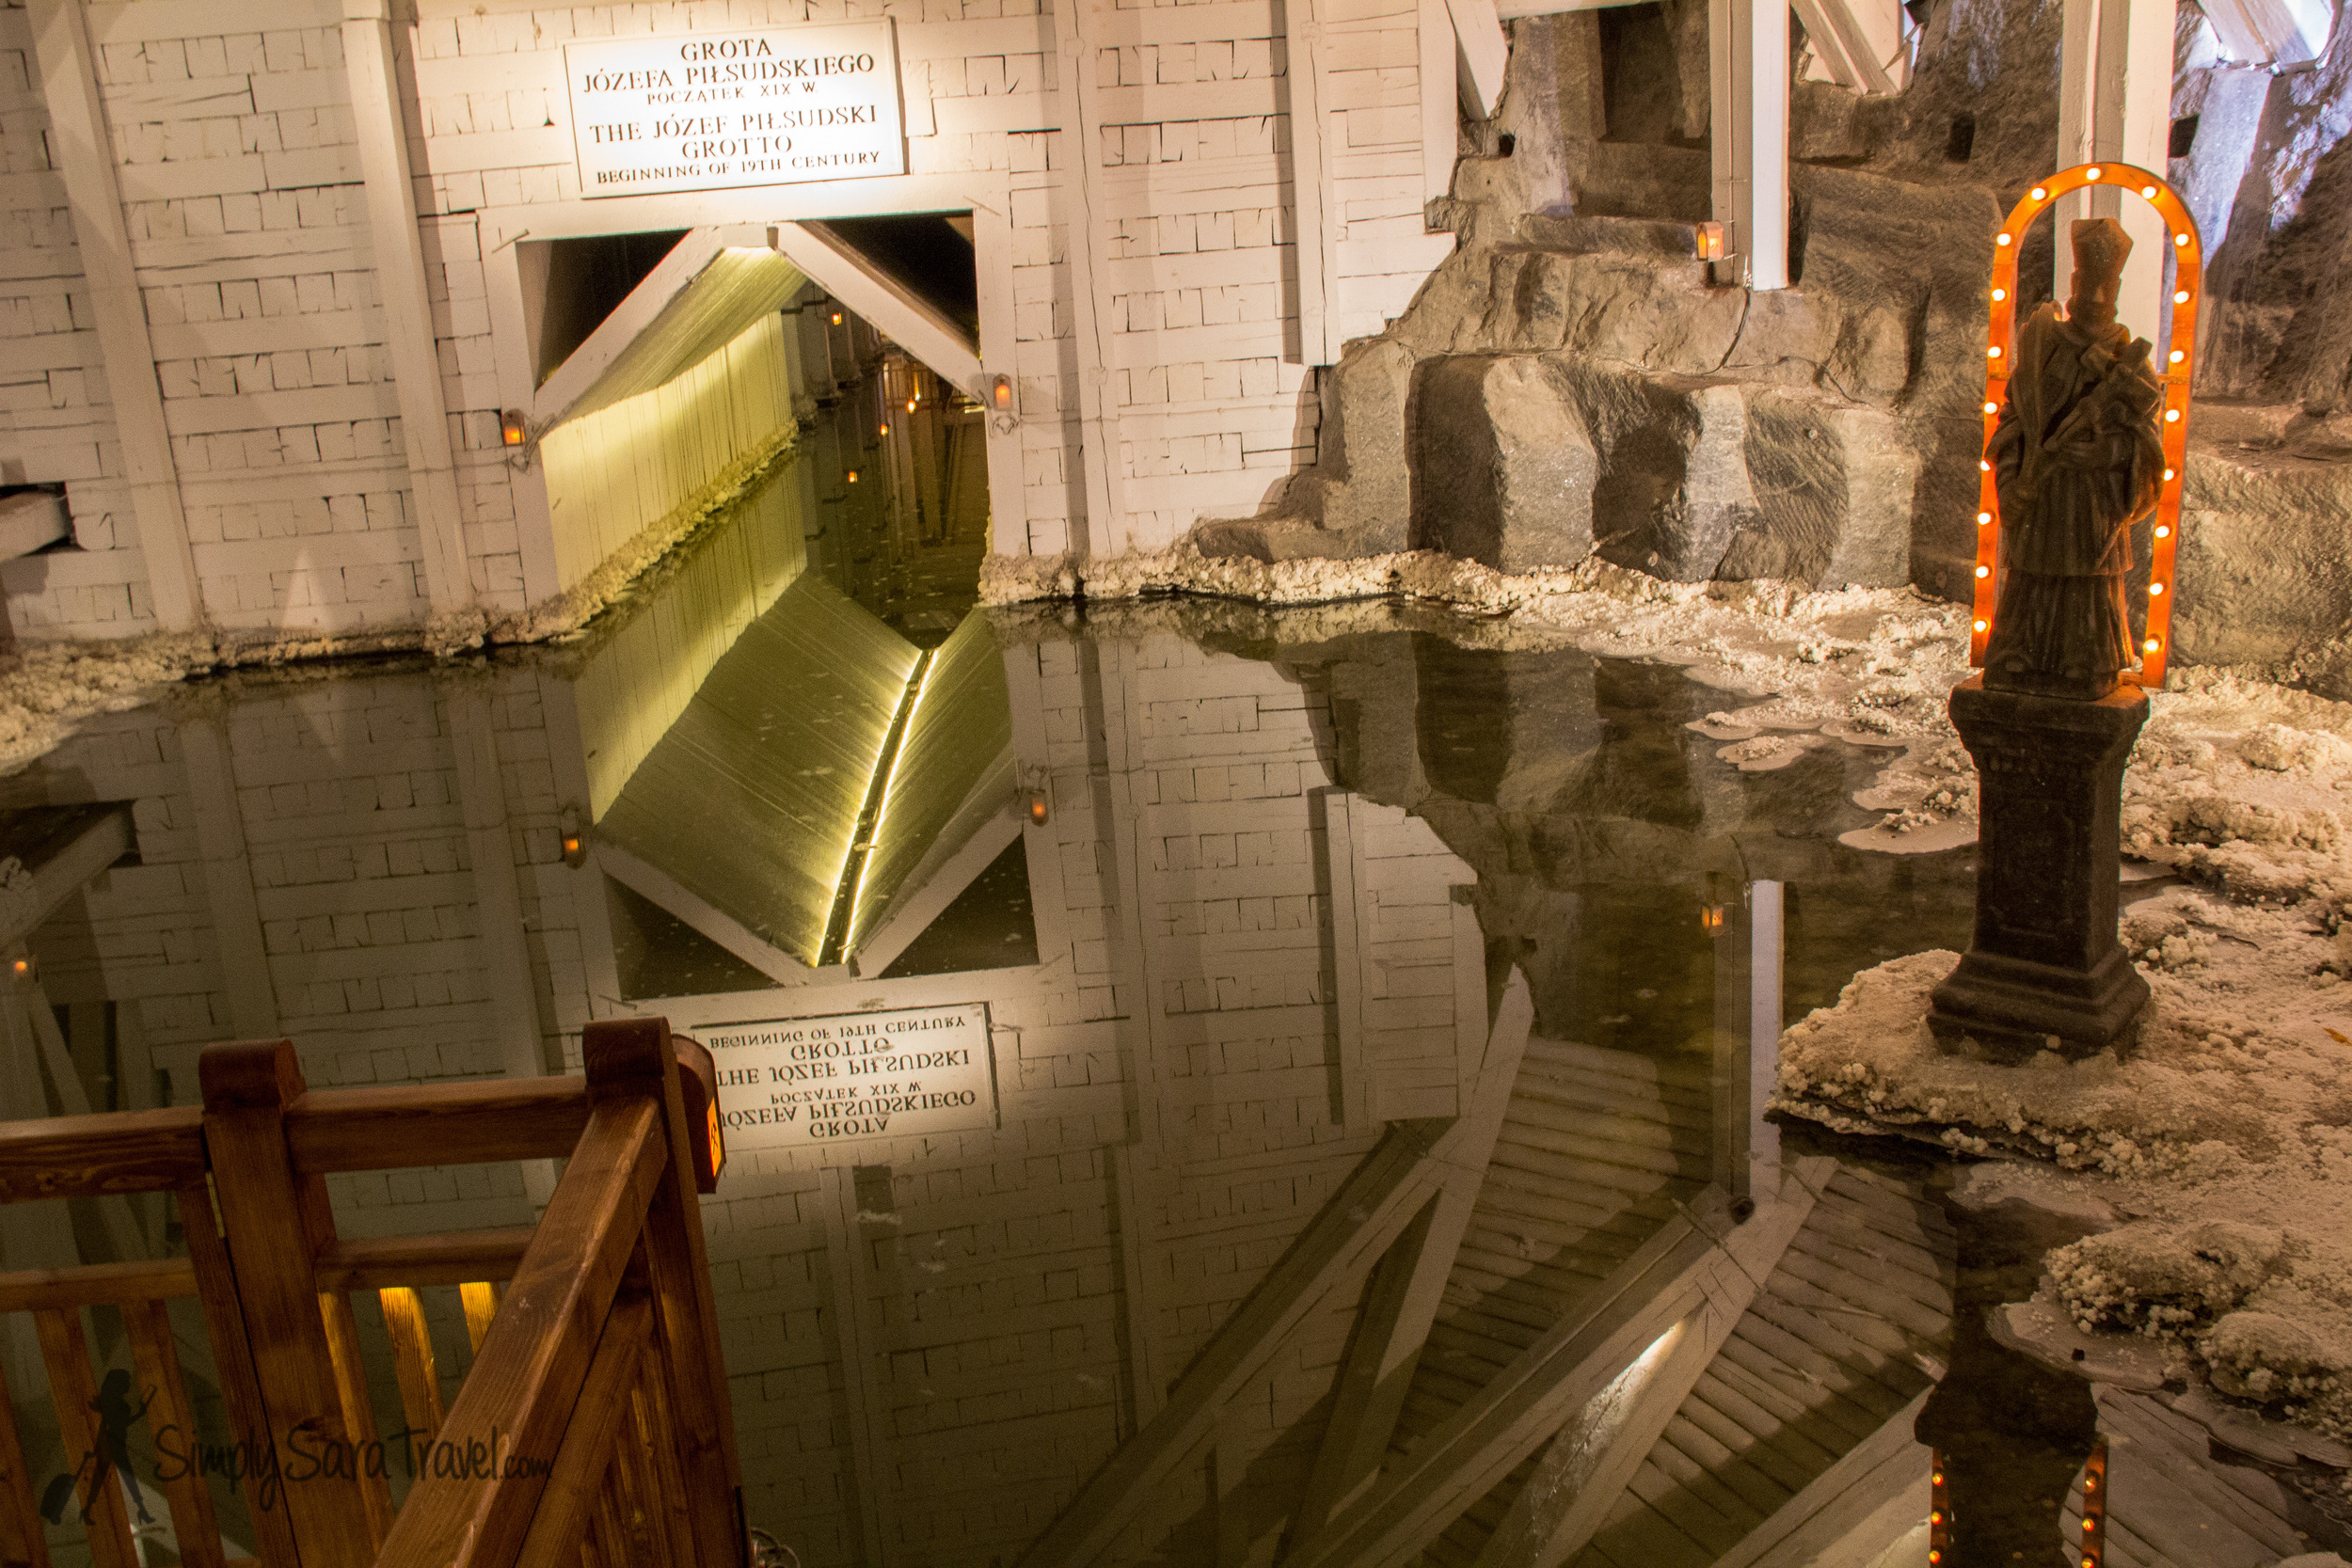 One of the lakes in theWieliczka Salt Mine